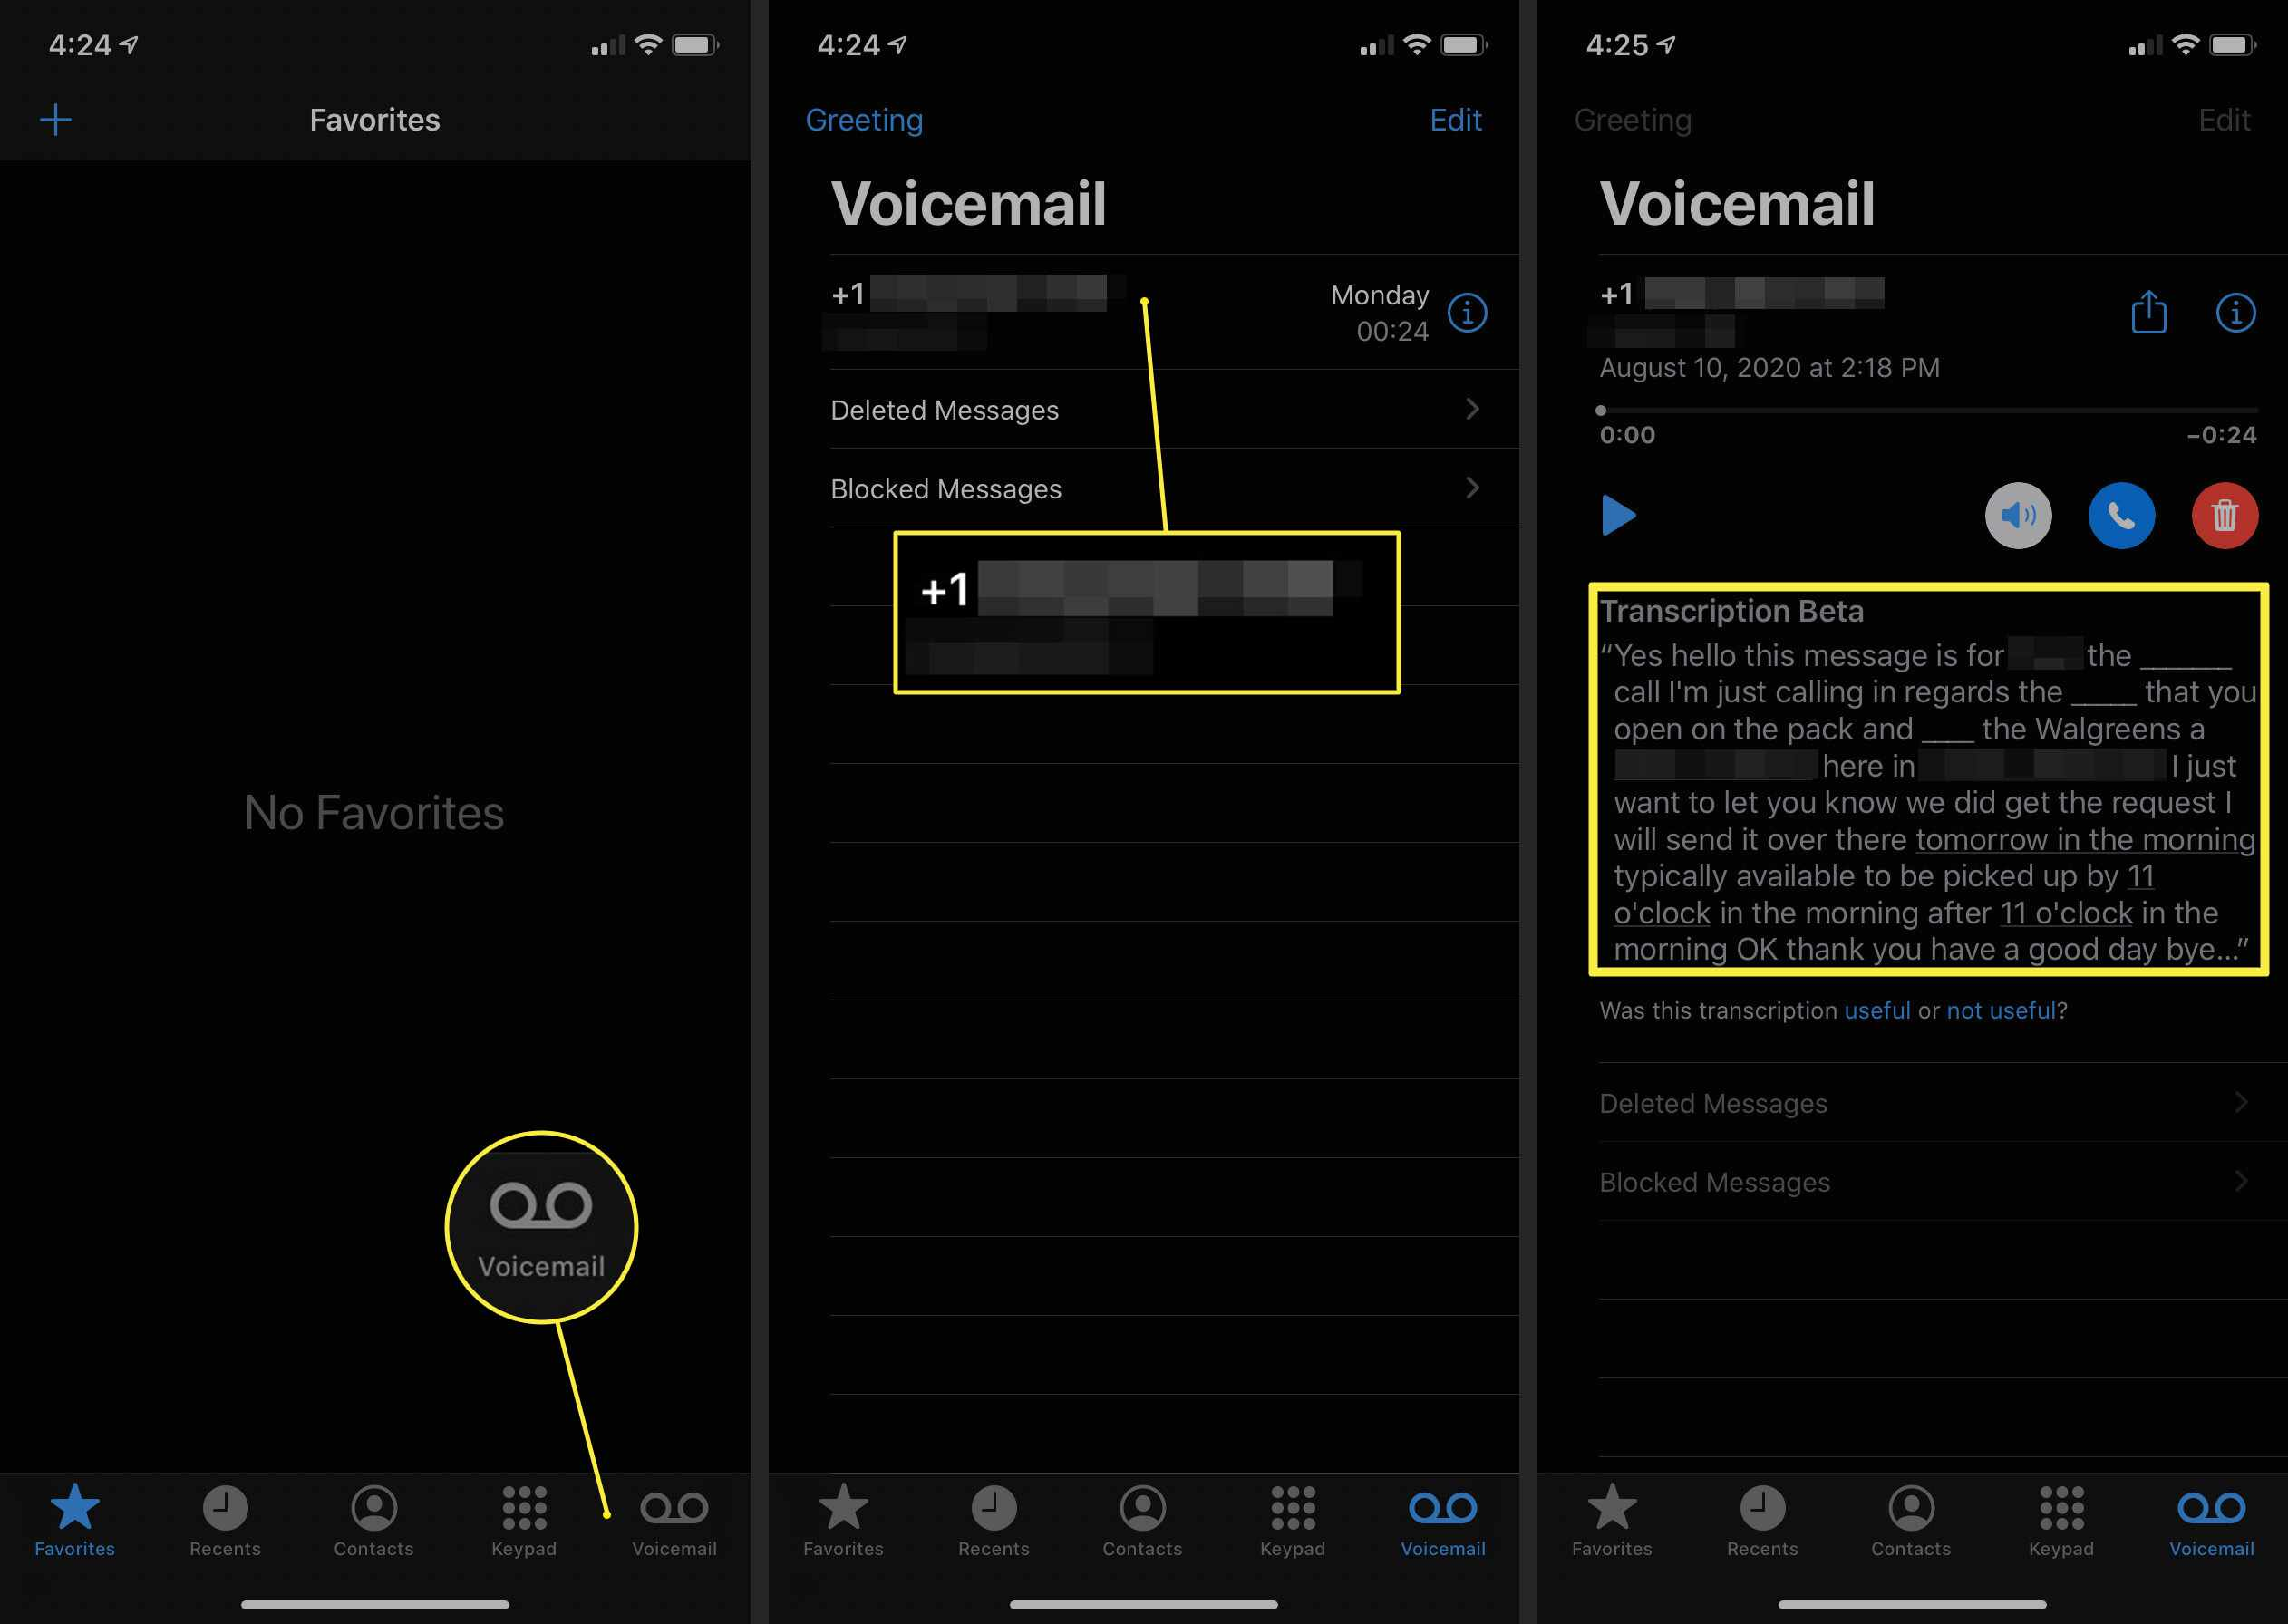 Voicemail view on iPhone